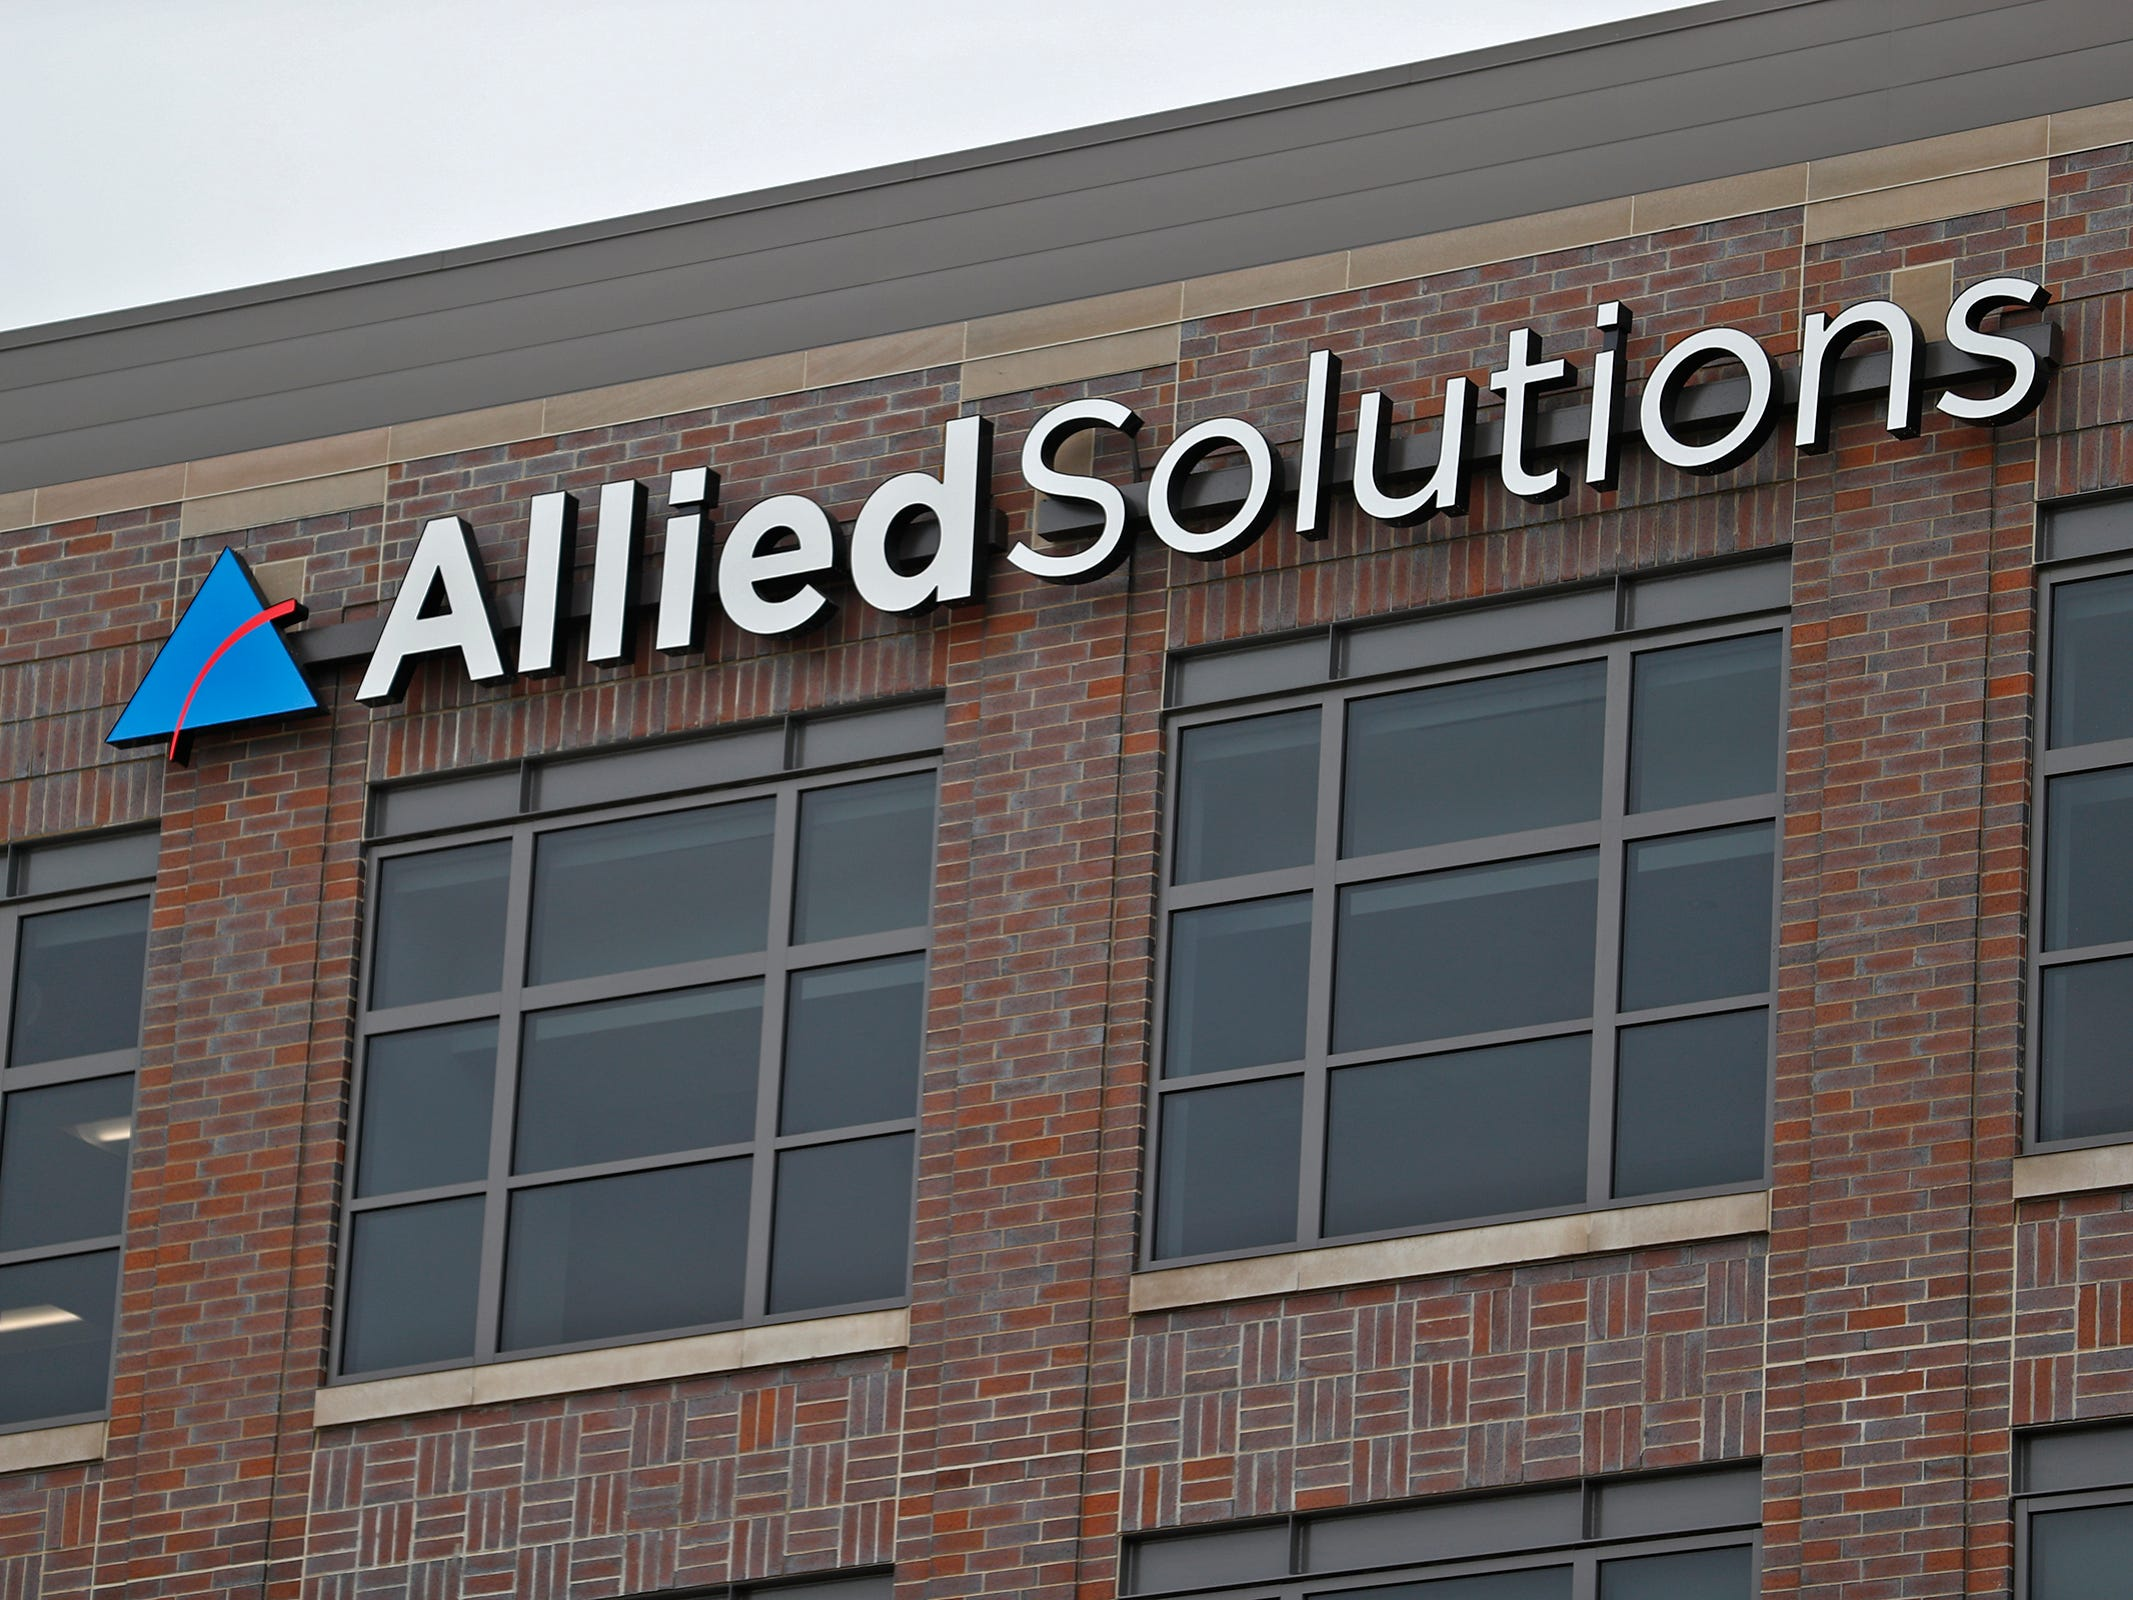 Allied Solutions is at 350 Veterans Way and along the Monon Trail, in Midtown Carmel, Tuesday, Aug. 7, 2018.